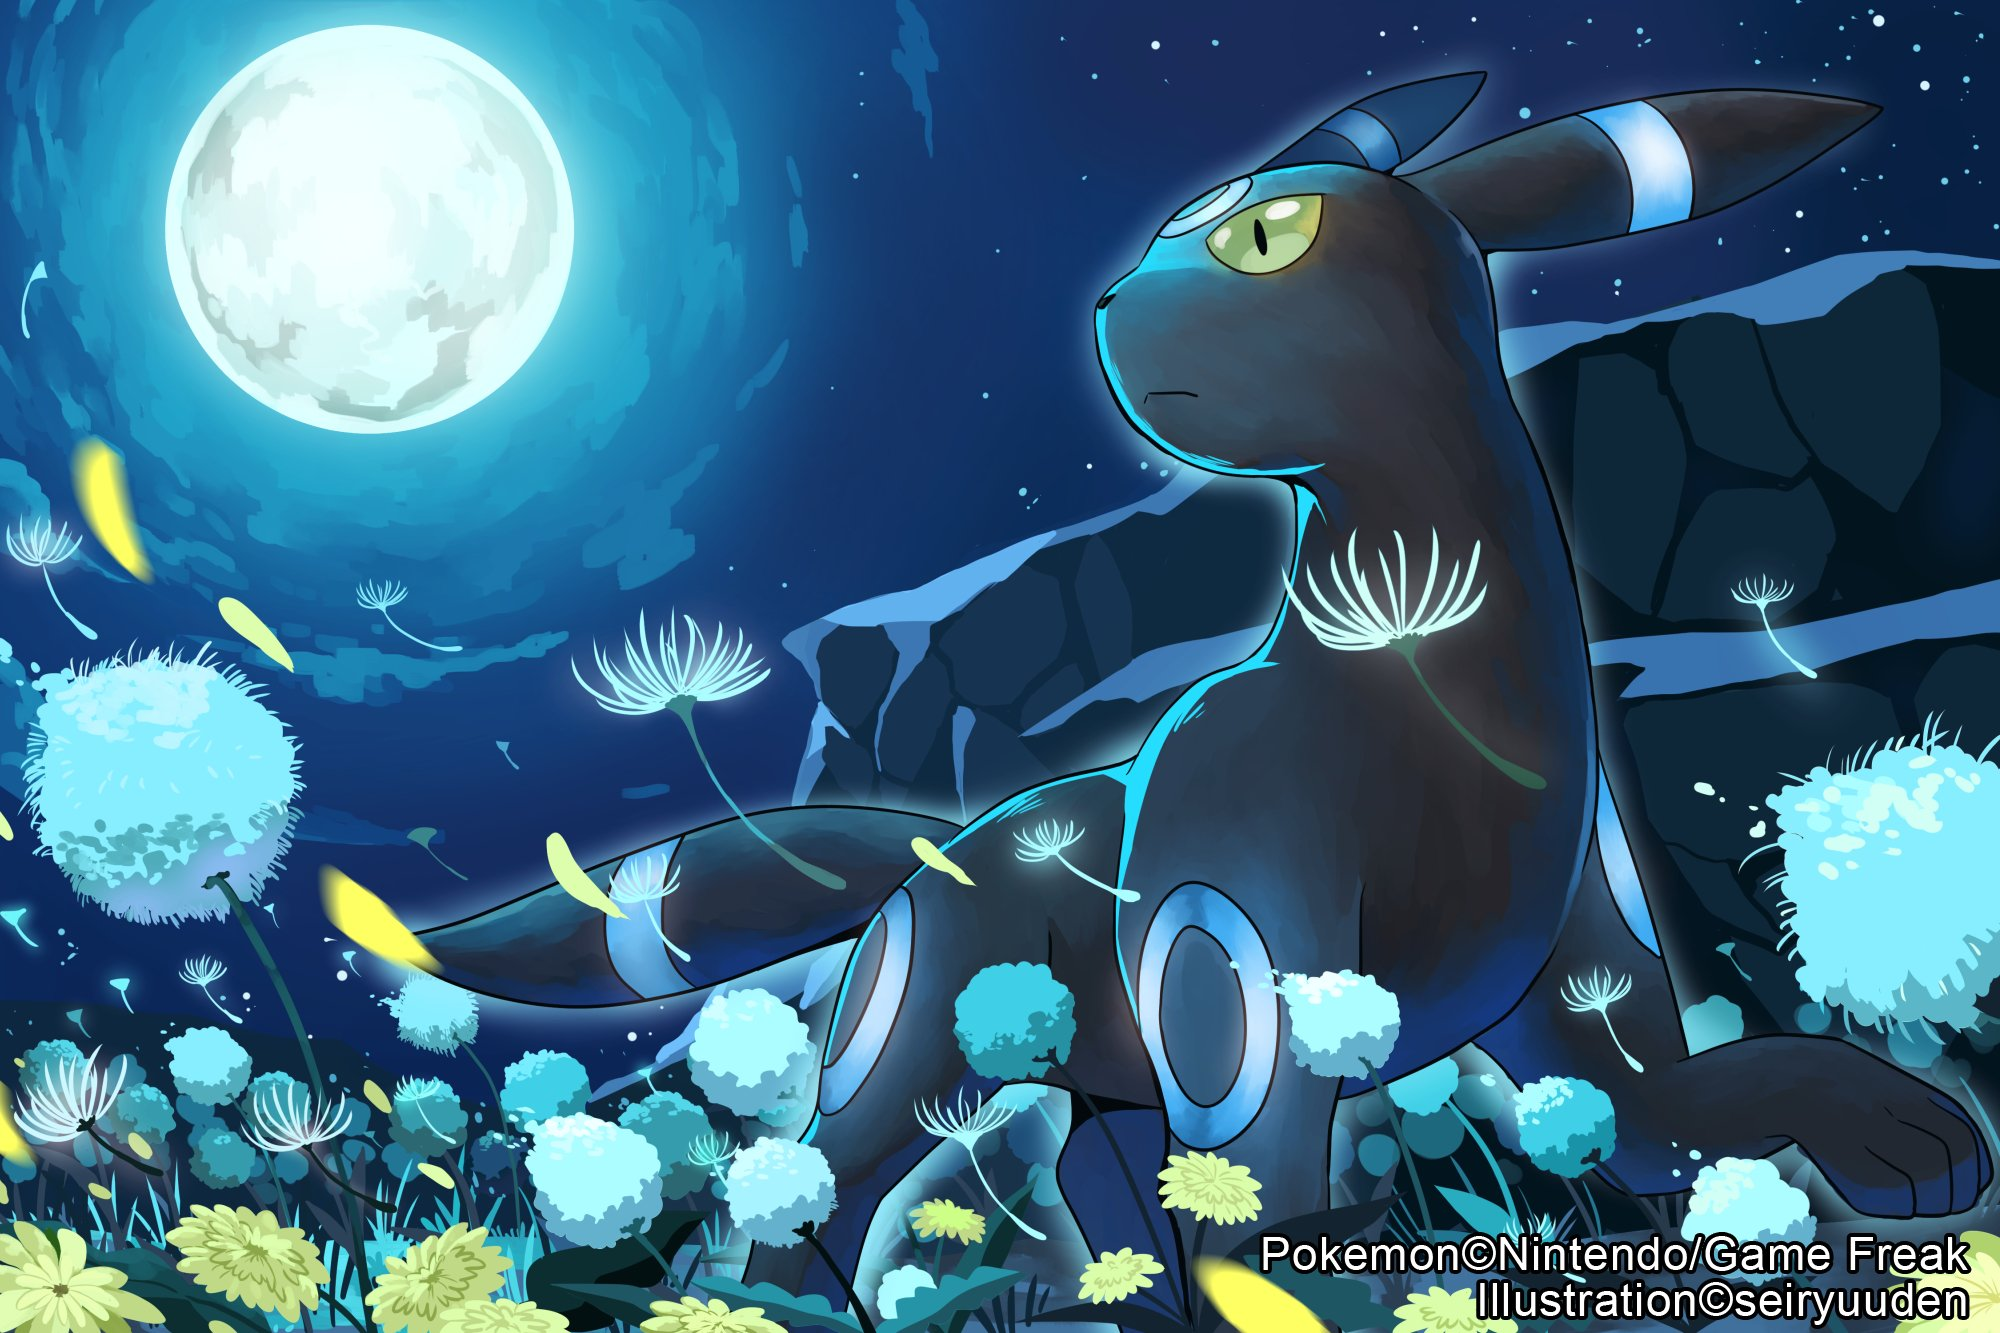 Pokemon Umbreon g wallpaper 2000x1333 340952 WallpaperUP 2000x1333